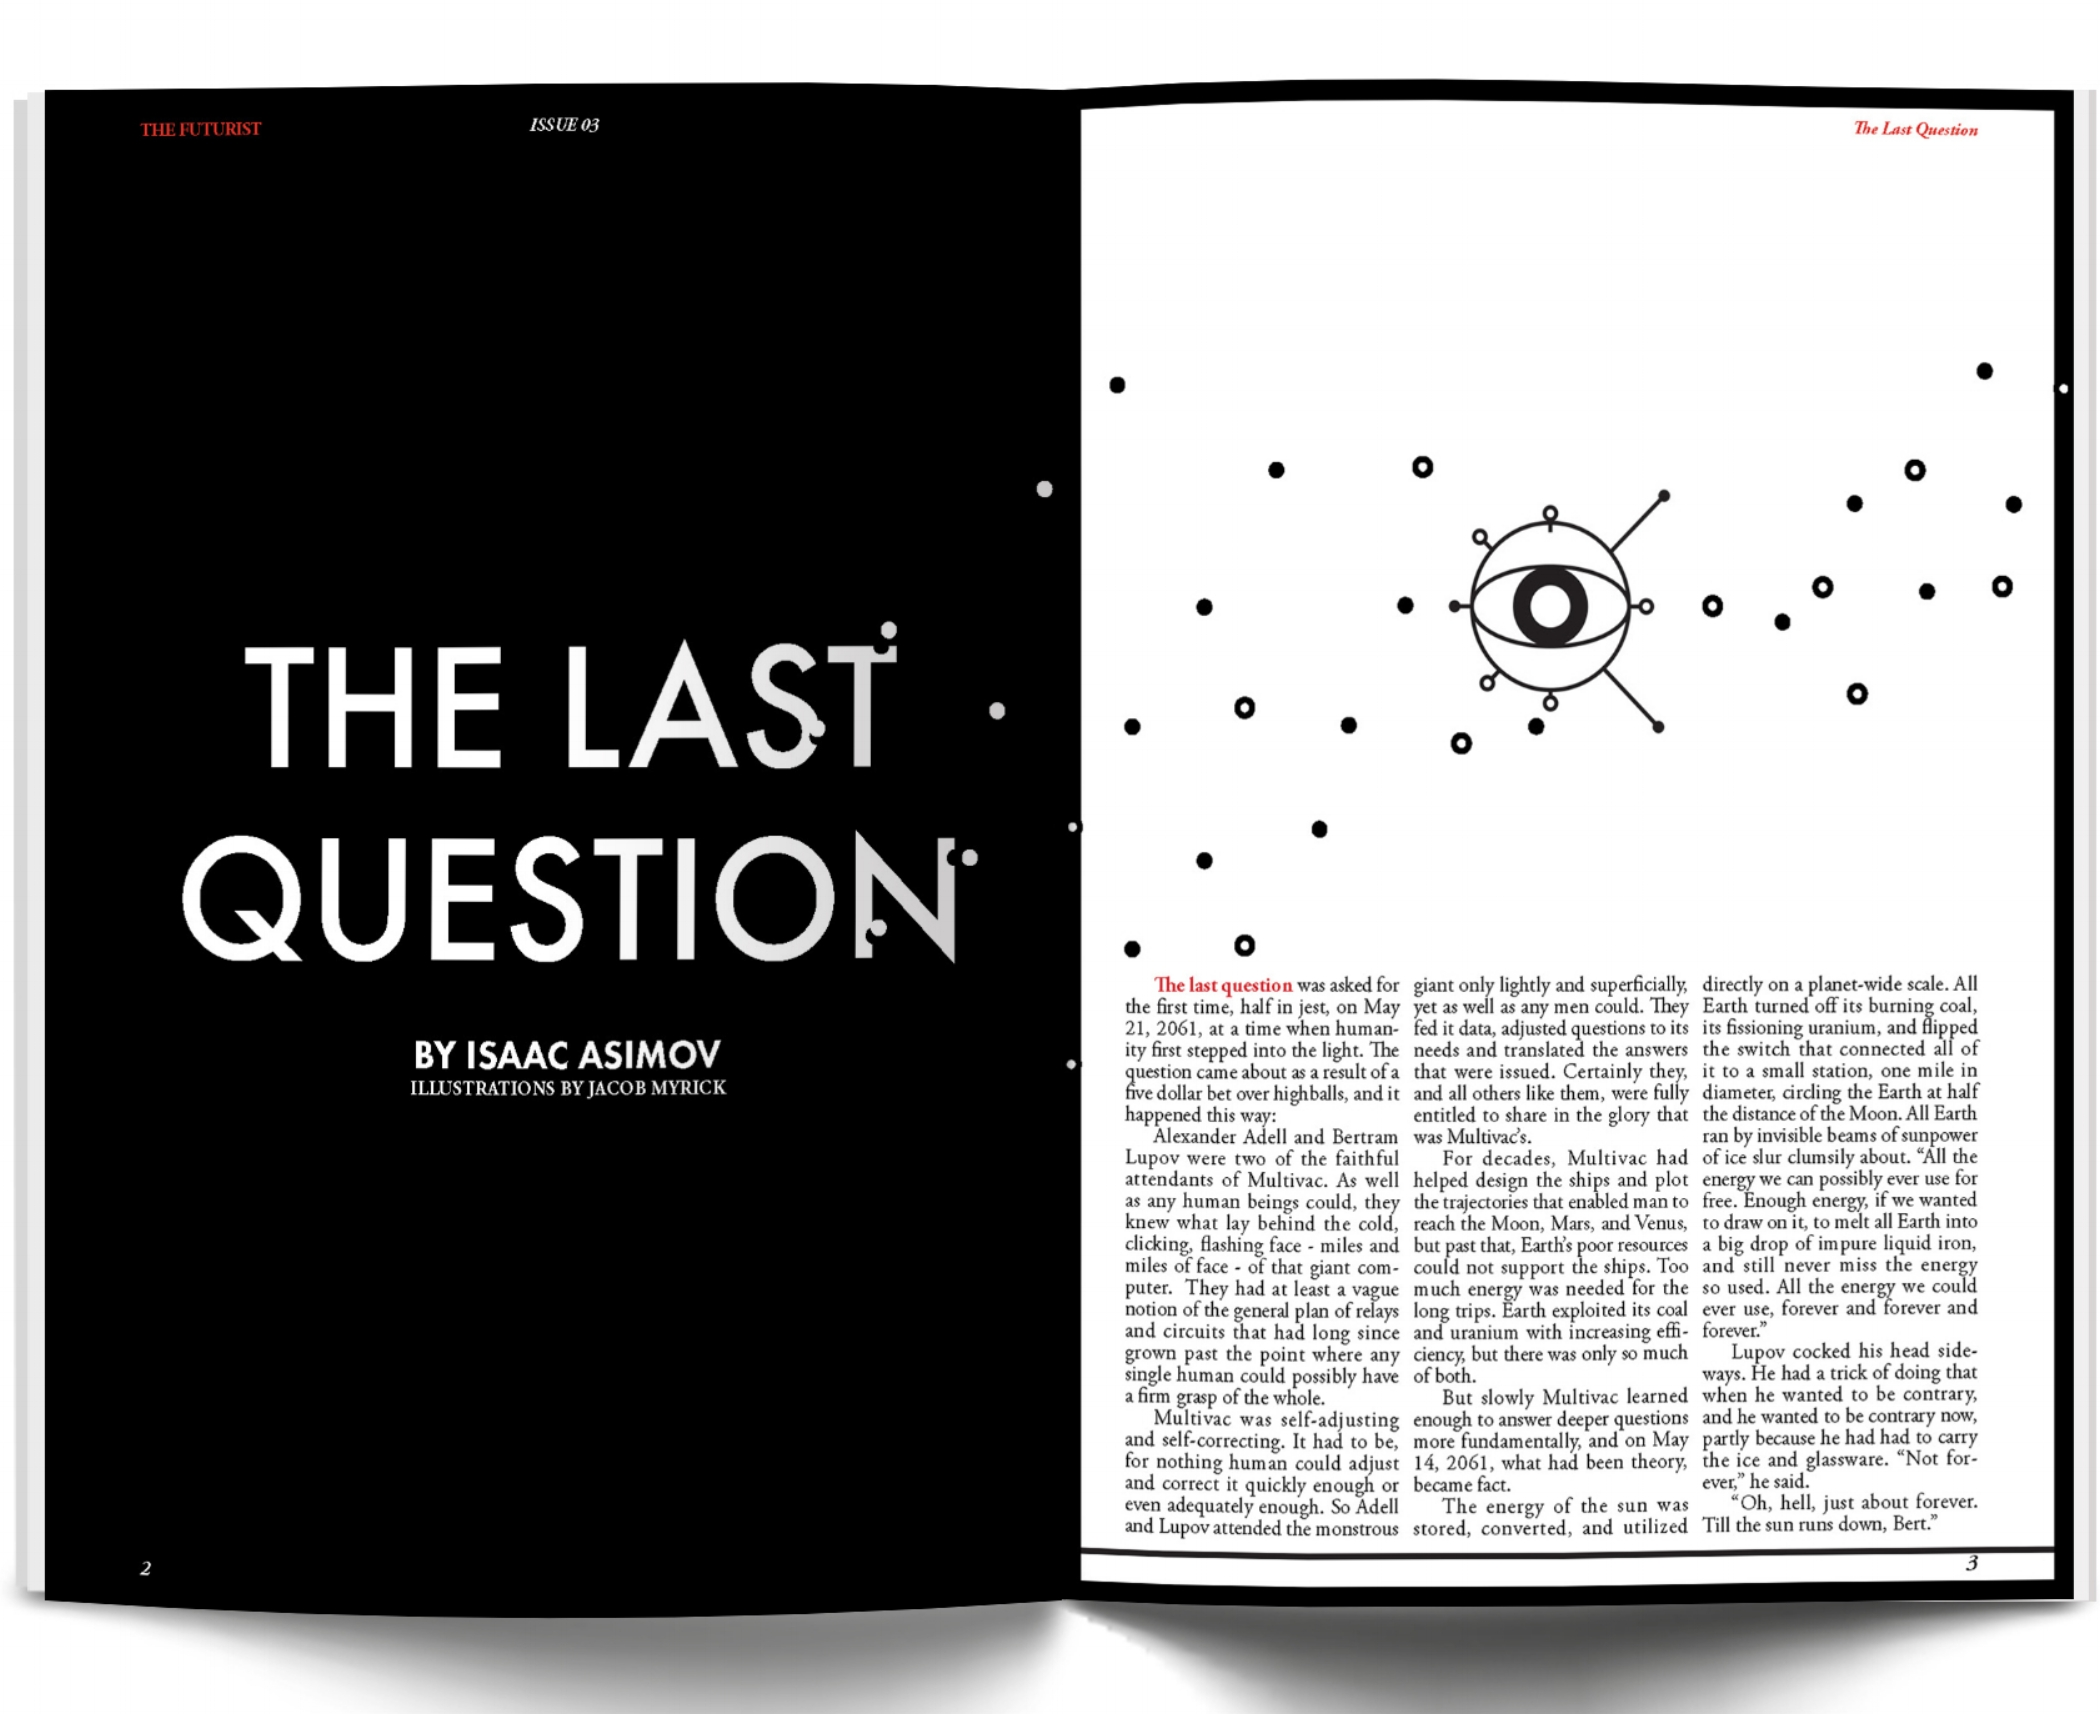 The Last Question - Editorial Design, Vector Graphics, Typography